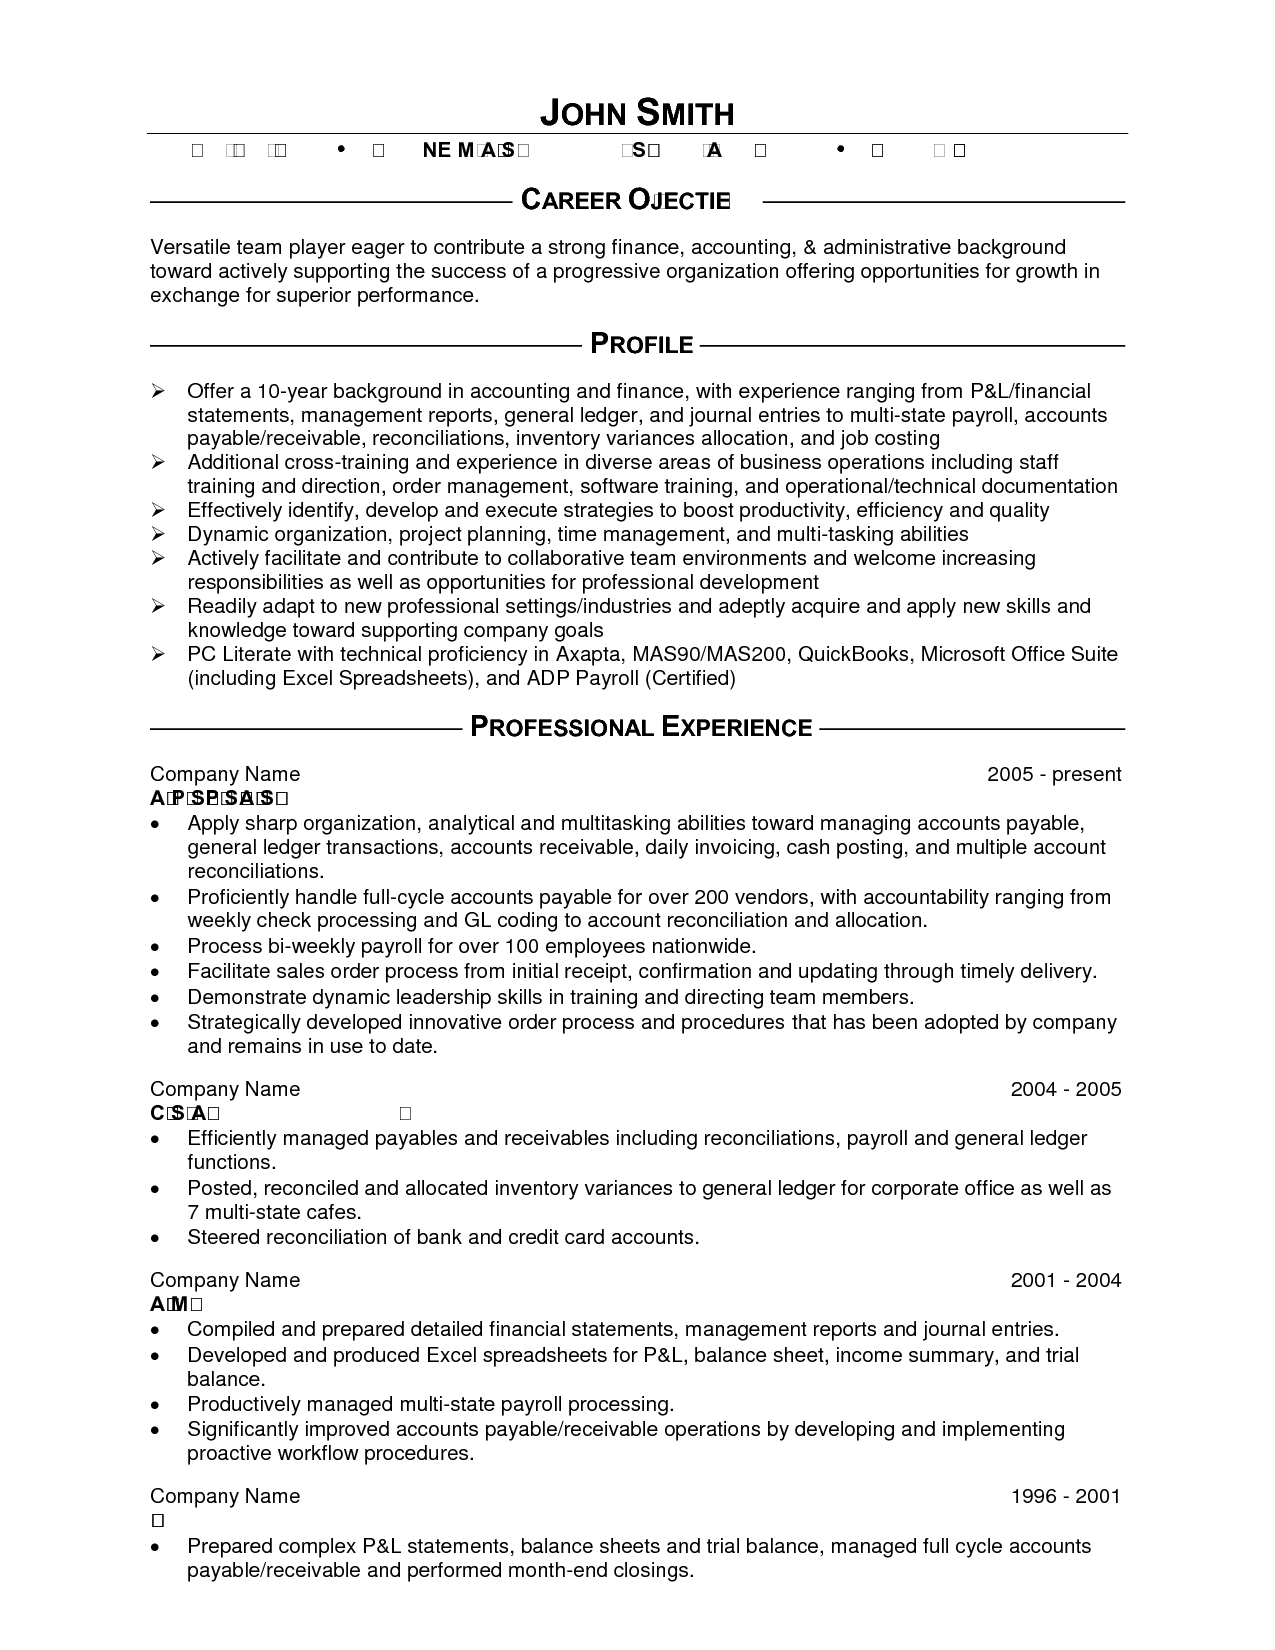 Professional Resume Cover Letter Sample Sample Resume Resume Example Cover Letter Profess Job Resume Examples Resume Objective Statement Resume Objective